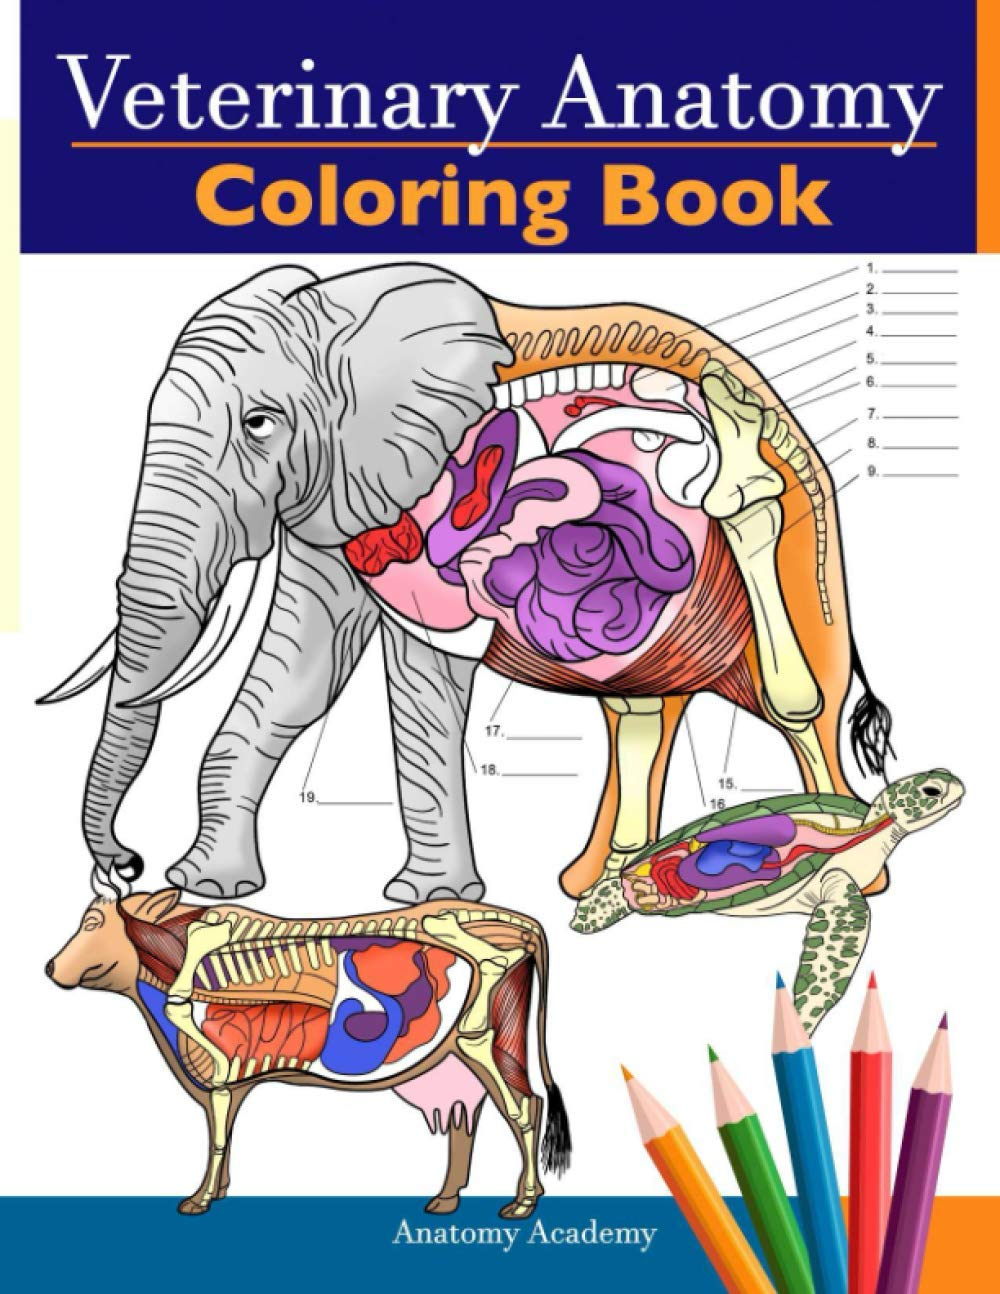 Amazon Com Veterinary Anatomy Coloring Book Animals Physiology Self Quiz Color Workbook For Studying And Relaxation Perfect Gift For Vet Students And Even Adults 9781838188603 Academy Anatomy Books